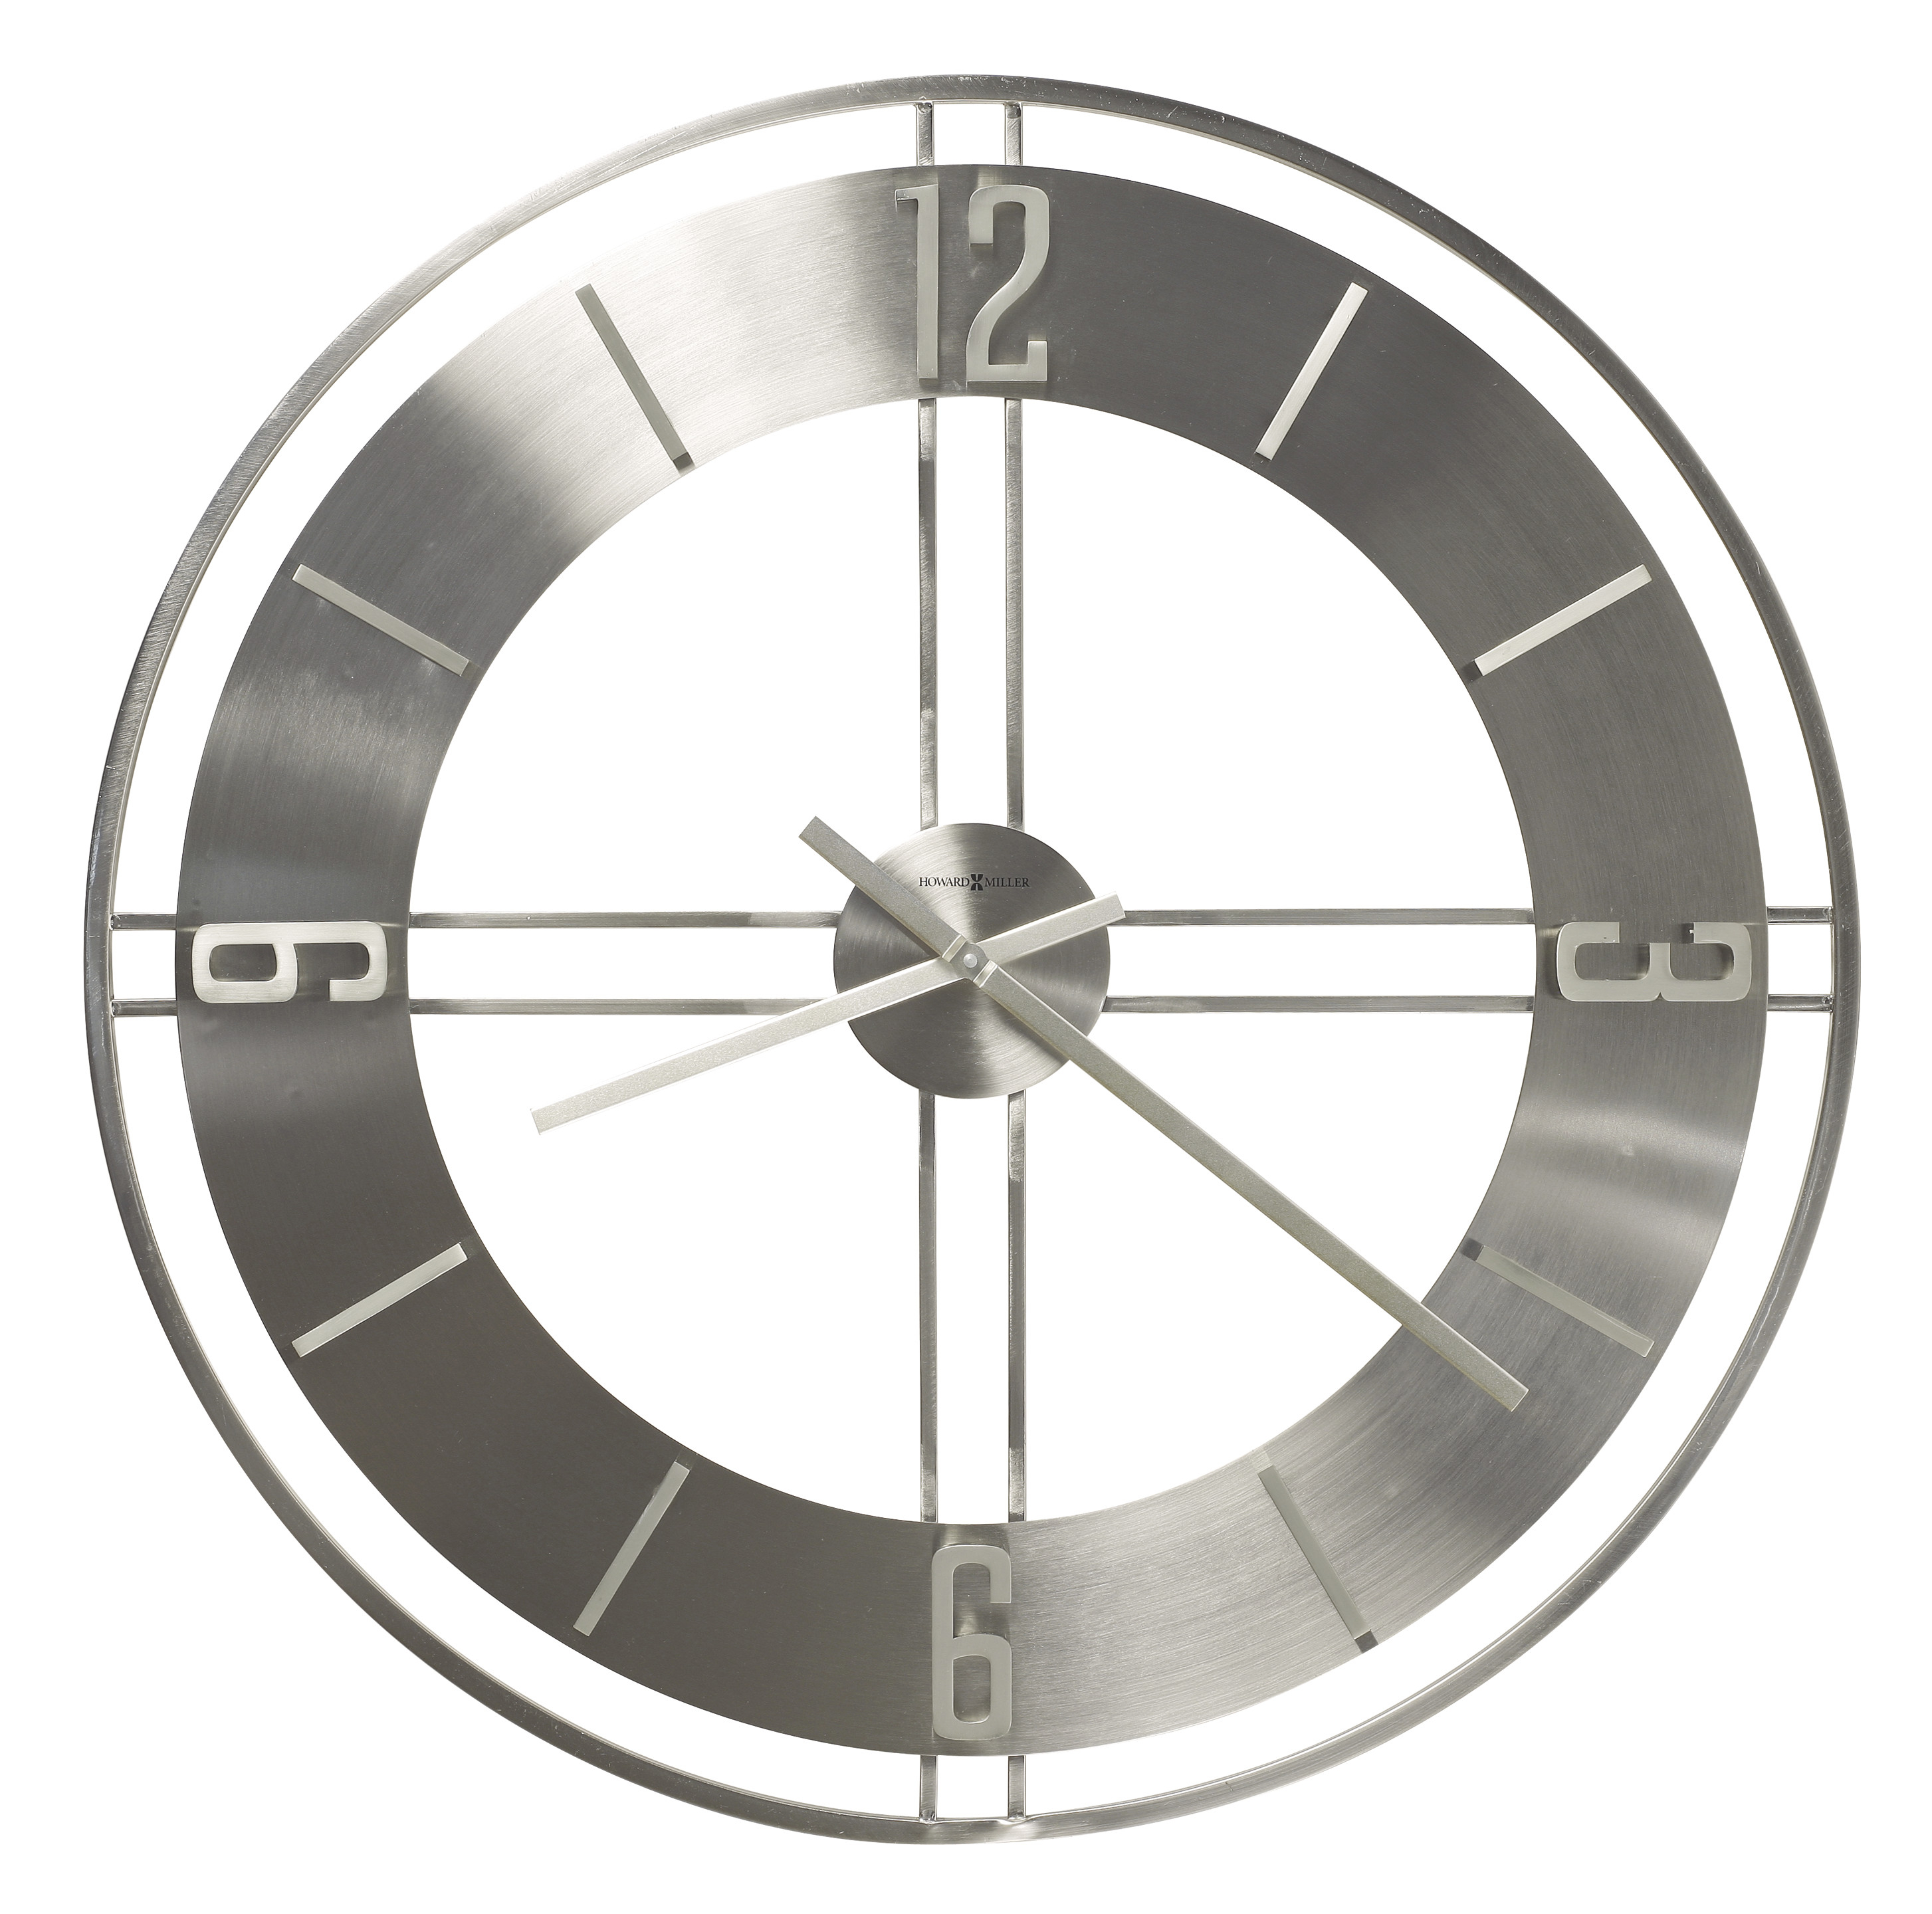 Howard Miller Oversized Gallery Wall Clocks Springfield Clock Shop